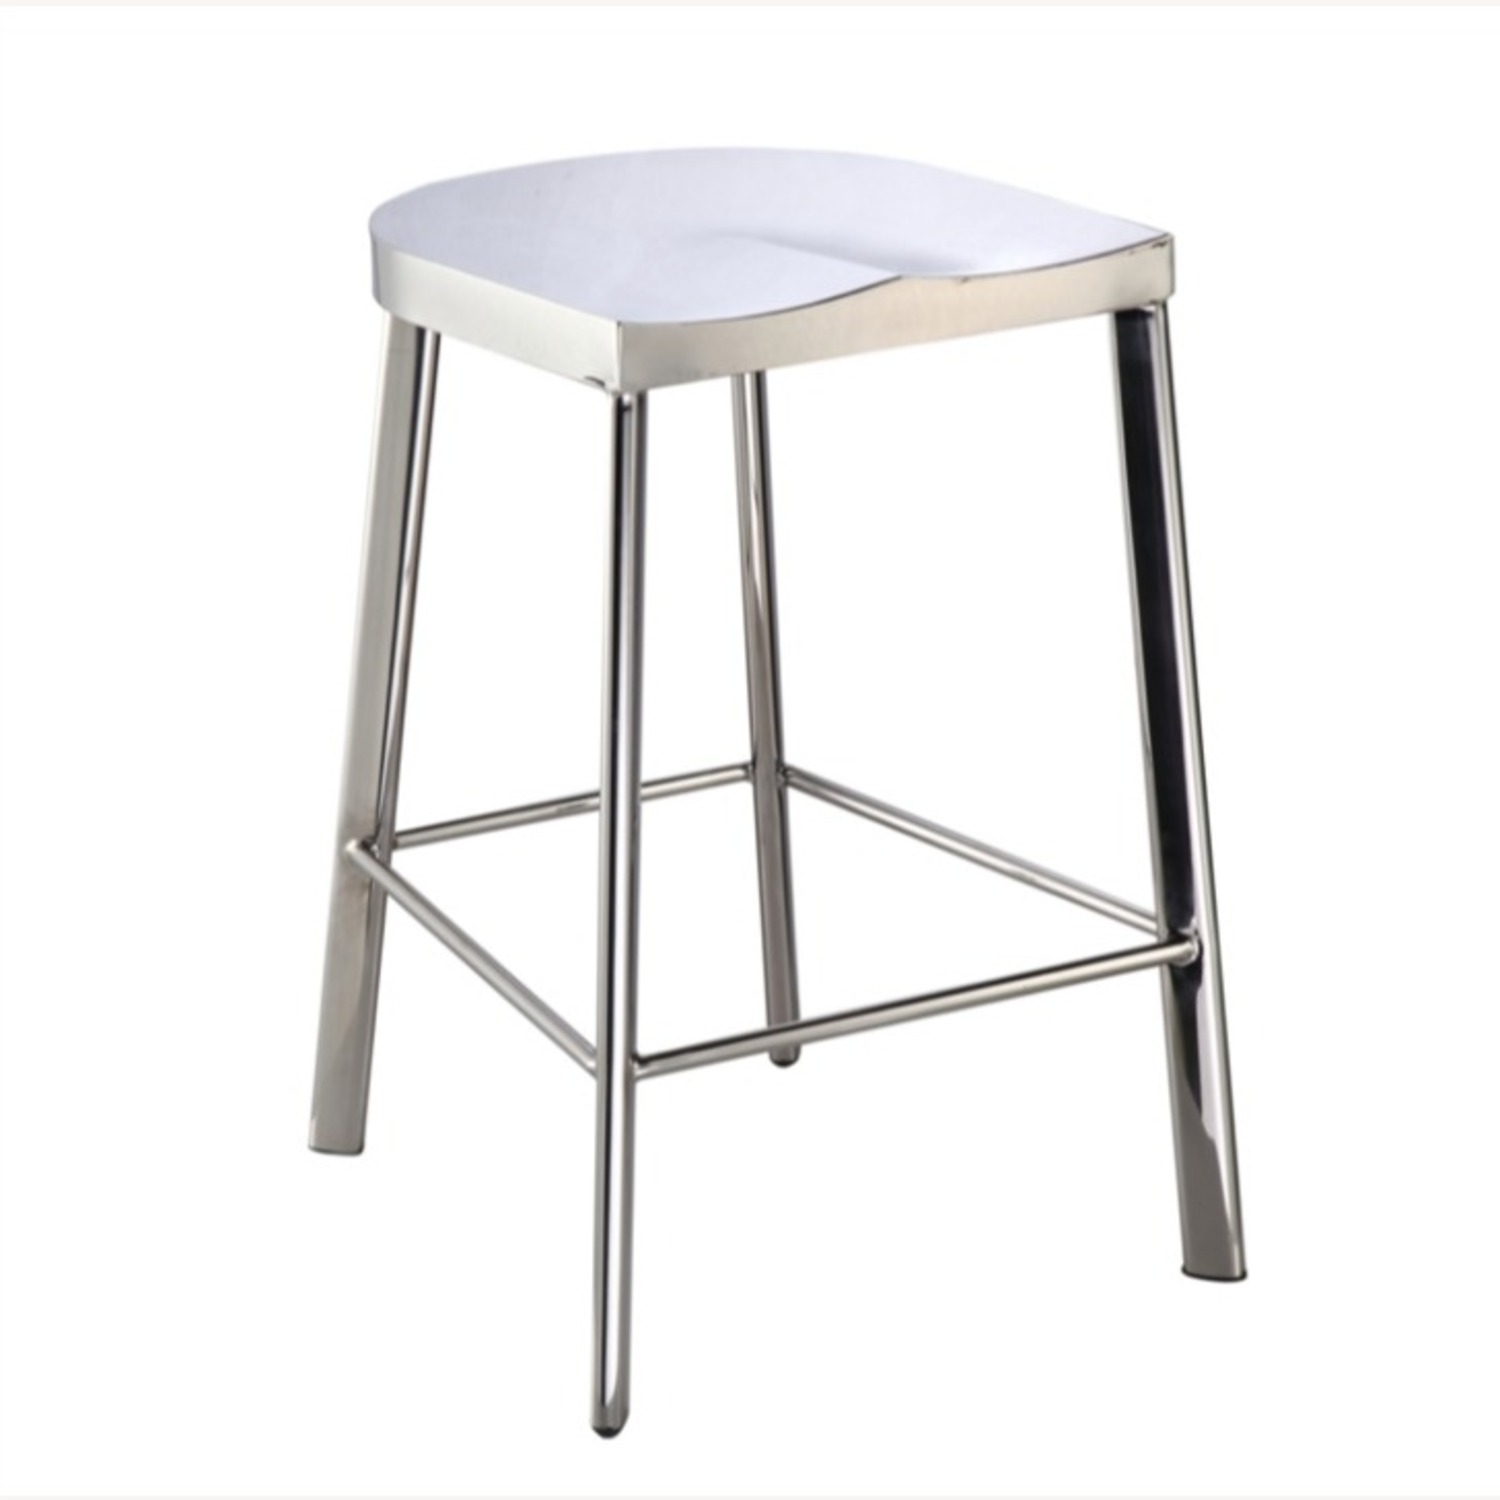 Modern Counter Stool In Silver Stainless Steel  - image-0